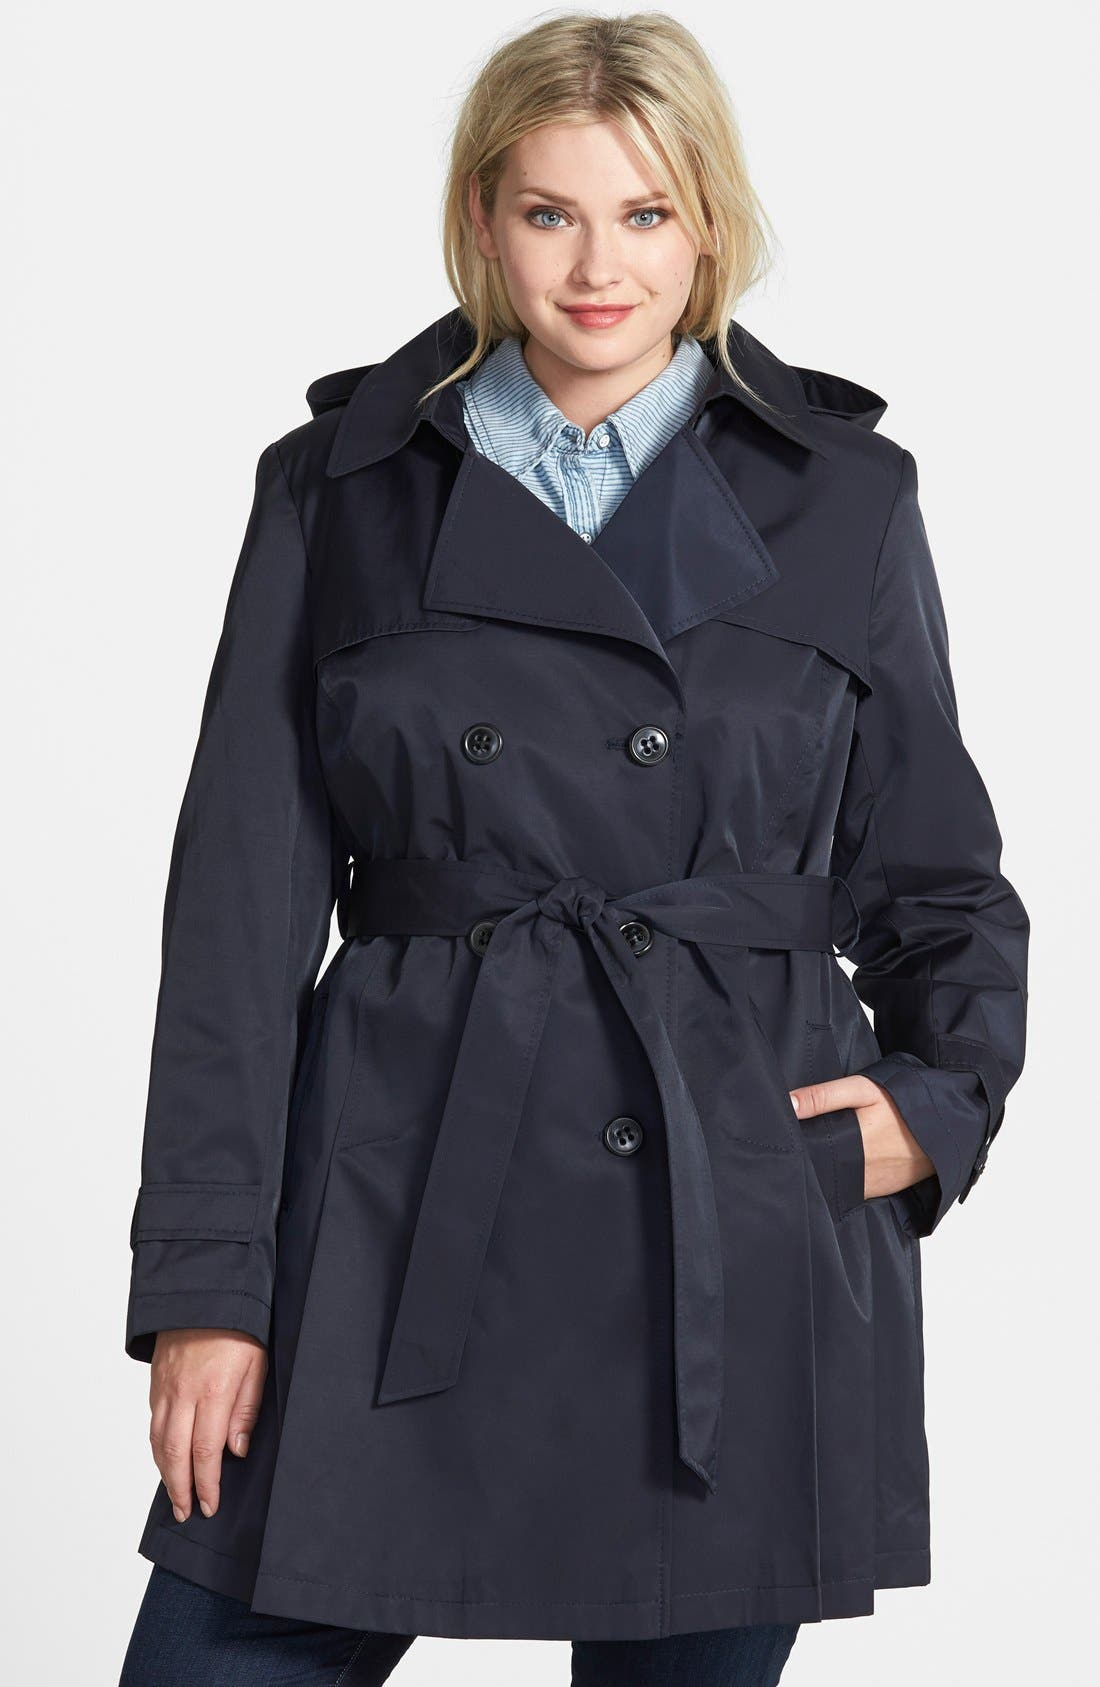 Alternate Image 1 Selected - DKNY Hooded Skirted Trench Coat (Plus Size)